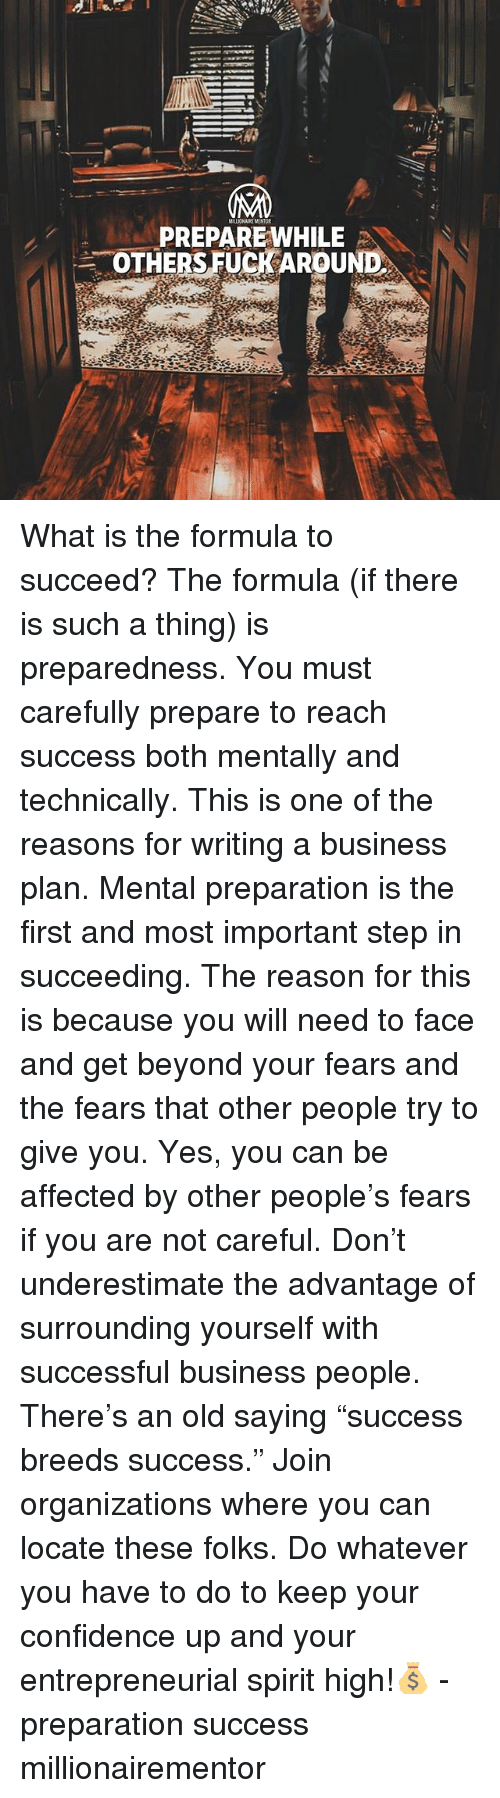 """Confidence, Memes, and Business: PREPAREWHILE  SOTHERS FUCKAROUND What is the formula to succeed? The formula (if there is such a thing) is preparedness. You must carefully prepare to reach success both mentally and technically. This is one of the reasons for writing a business plan. Mental preparation is the first and most important step in succeeding. The reason for this is because you will need to face and get beyond your fears and the fears that other people try to give you. Yes, you can be affected by other people's fears if you are not careful. Don't underestimate the advantage of surrounding yourself with successful business people. There's an old saying """"success breeds success."""" Join organizations where you can locate these folks. Do whatever you have to do to keep your confidence up and your entrepreneurial spirit high!💰 - preparation success millionairementor"""